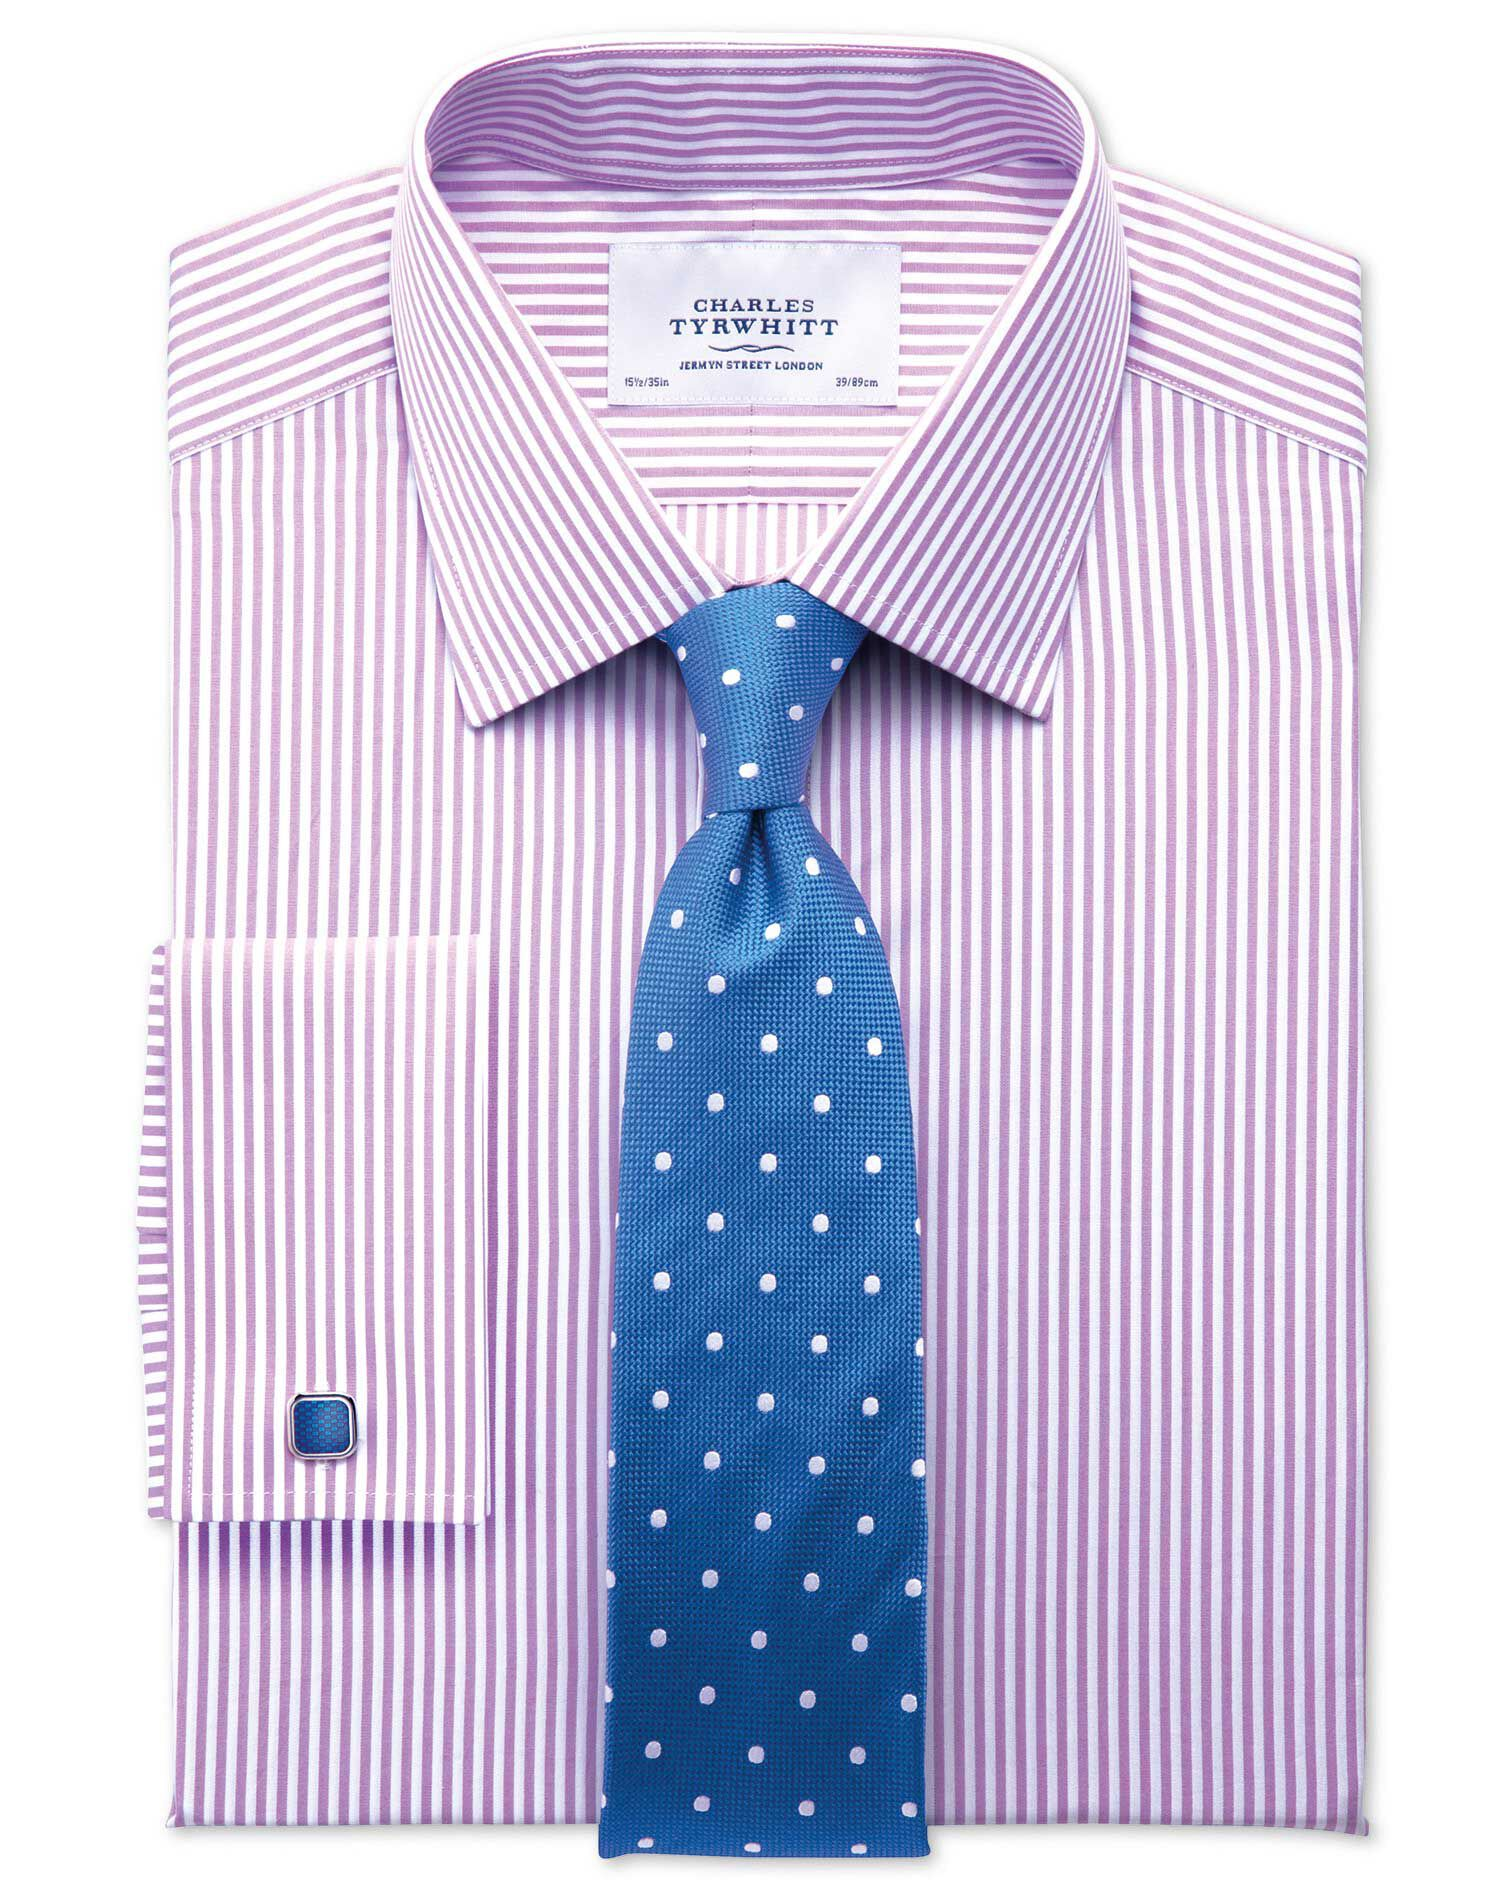 Classic Fit Bengal Stripe Lilac Cotton Formal Shirt Single Cuff Size 16/34 by Charles Tyrwhitt